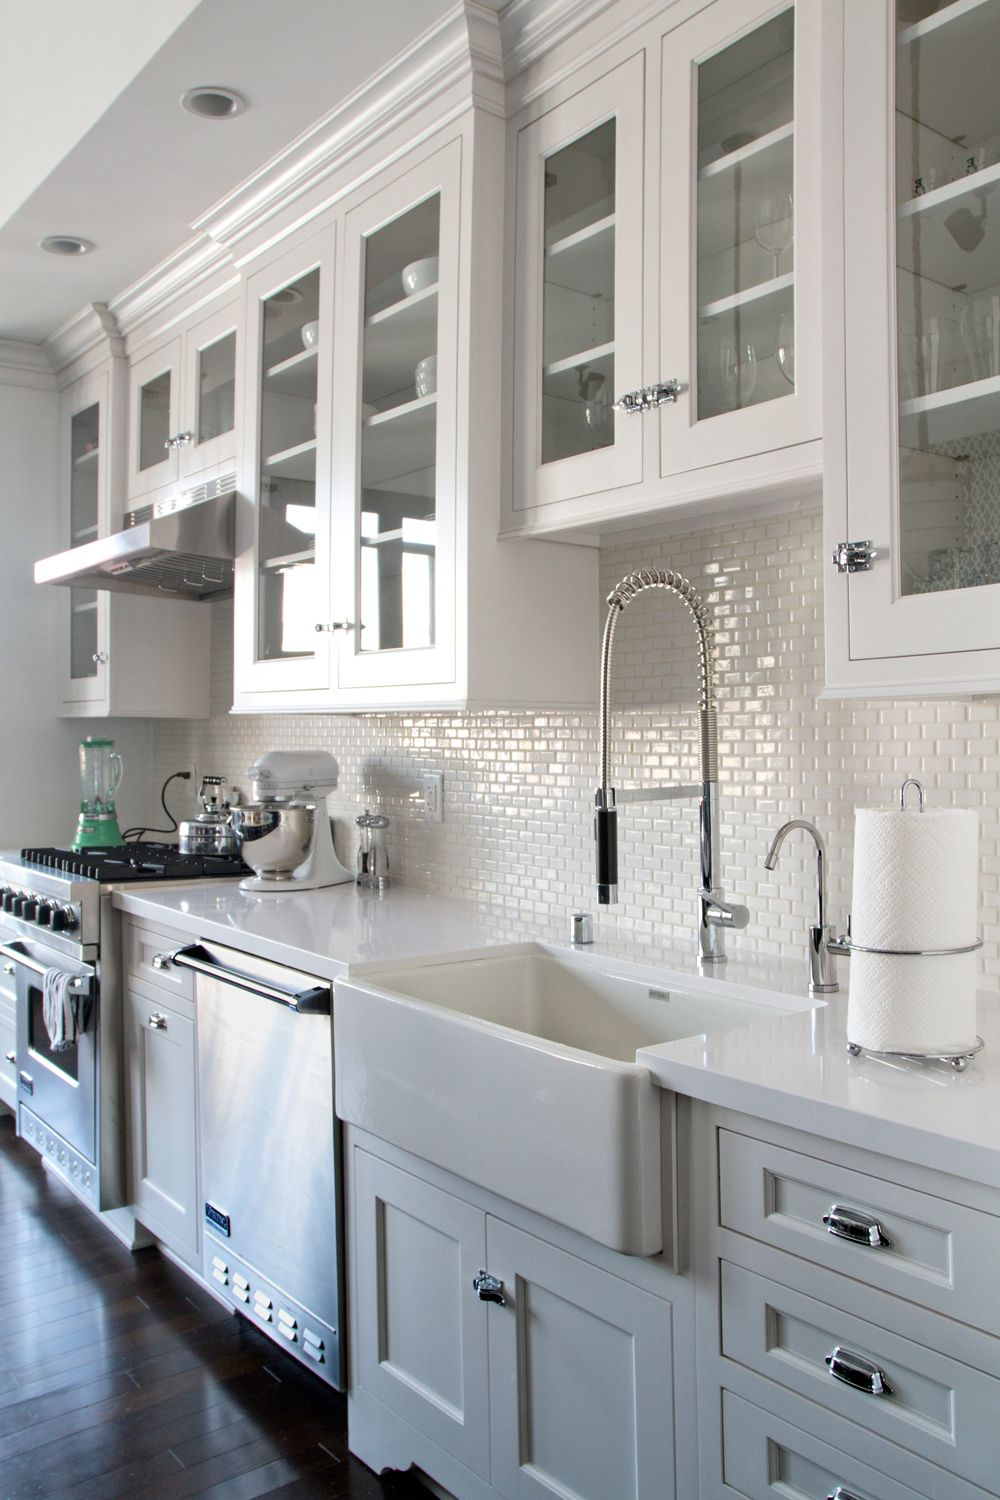 Pin By Lara On For The Home Kitchen Design Kitchen Inspirations Farmhouse Kitchen Cabinets